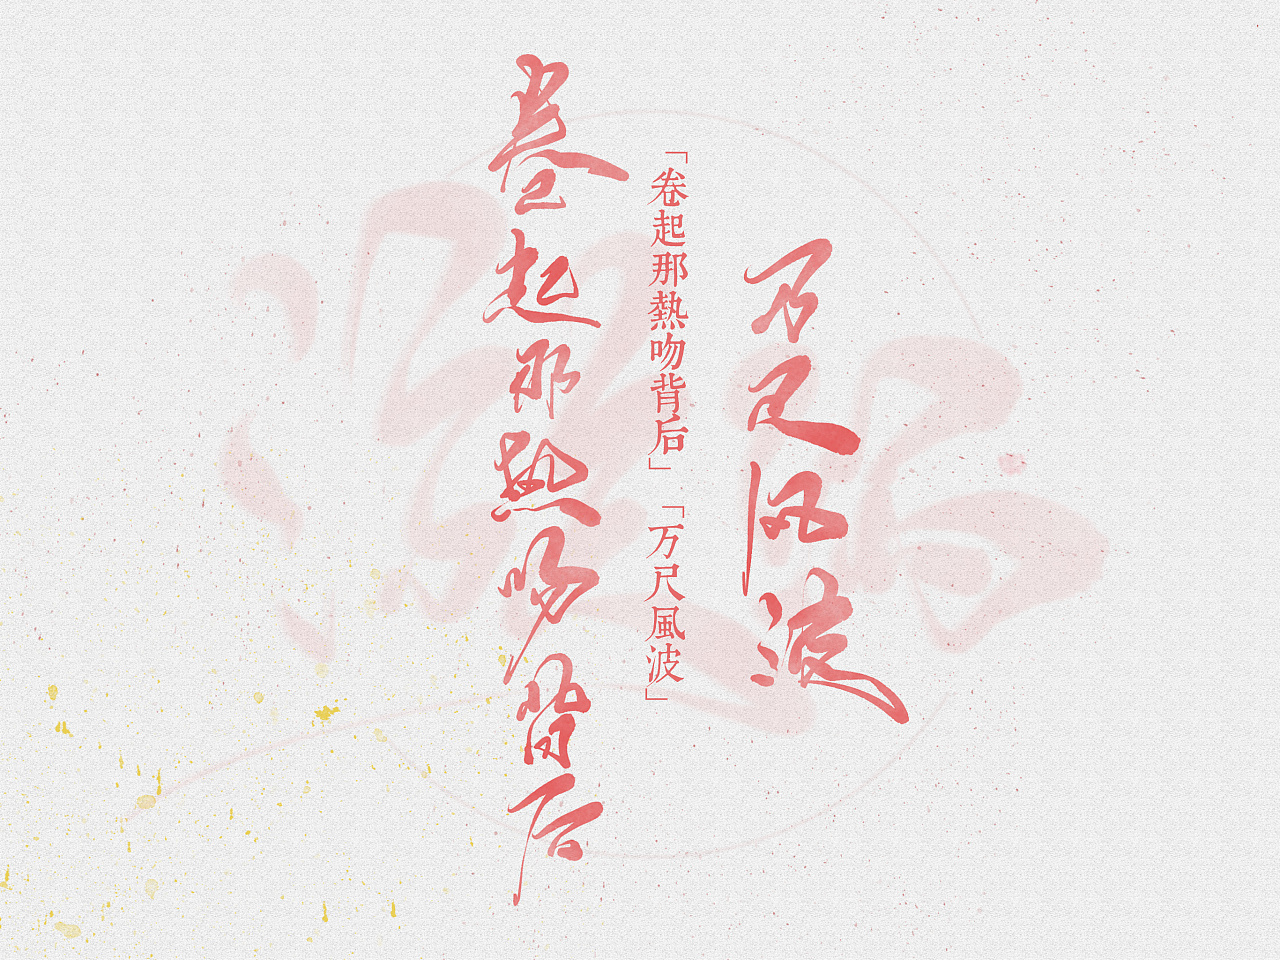 9P Handwriting vortex Brush calligraphy font - Chinese Design Inspiration